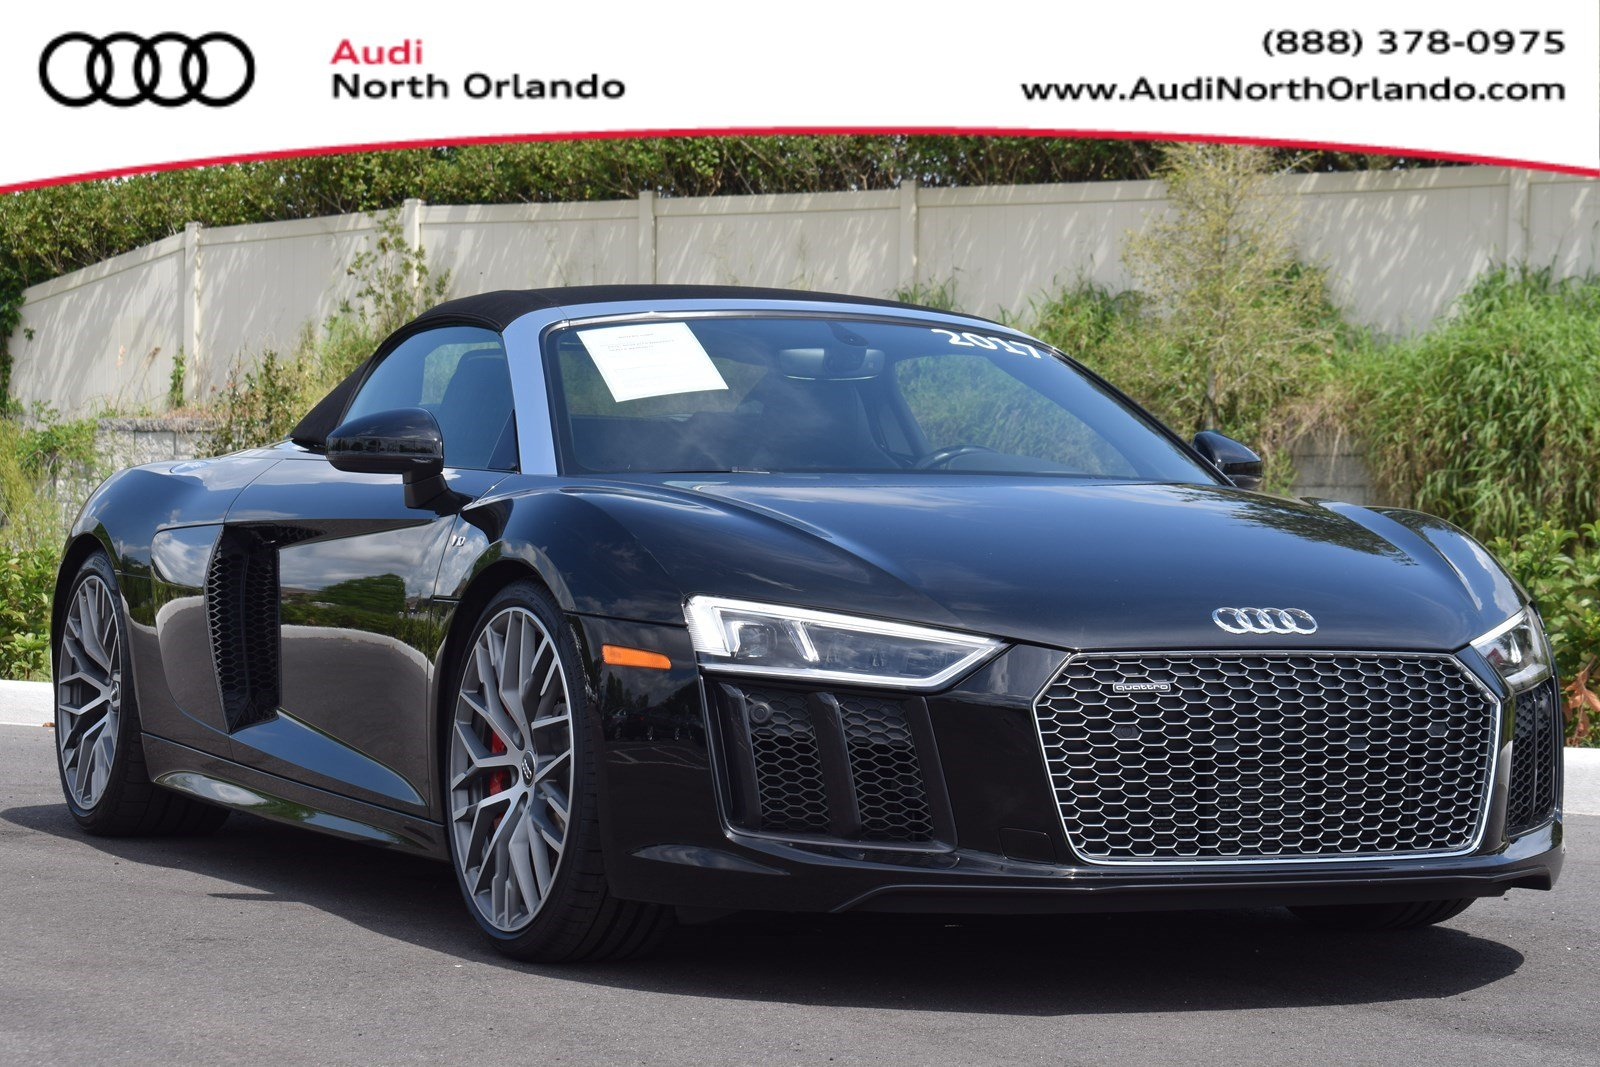 Used 2017 Audi R8 For Sale Sanford Fl Wuavacfx0h7904350